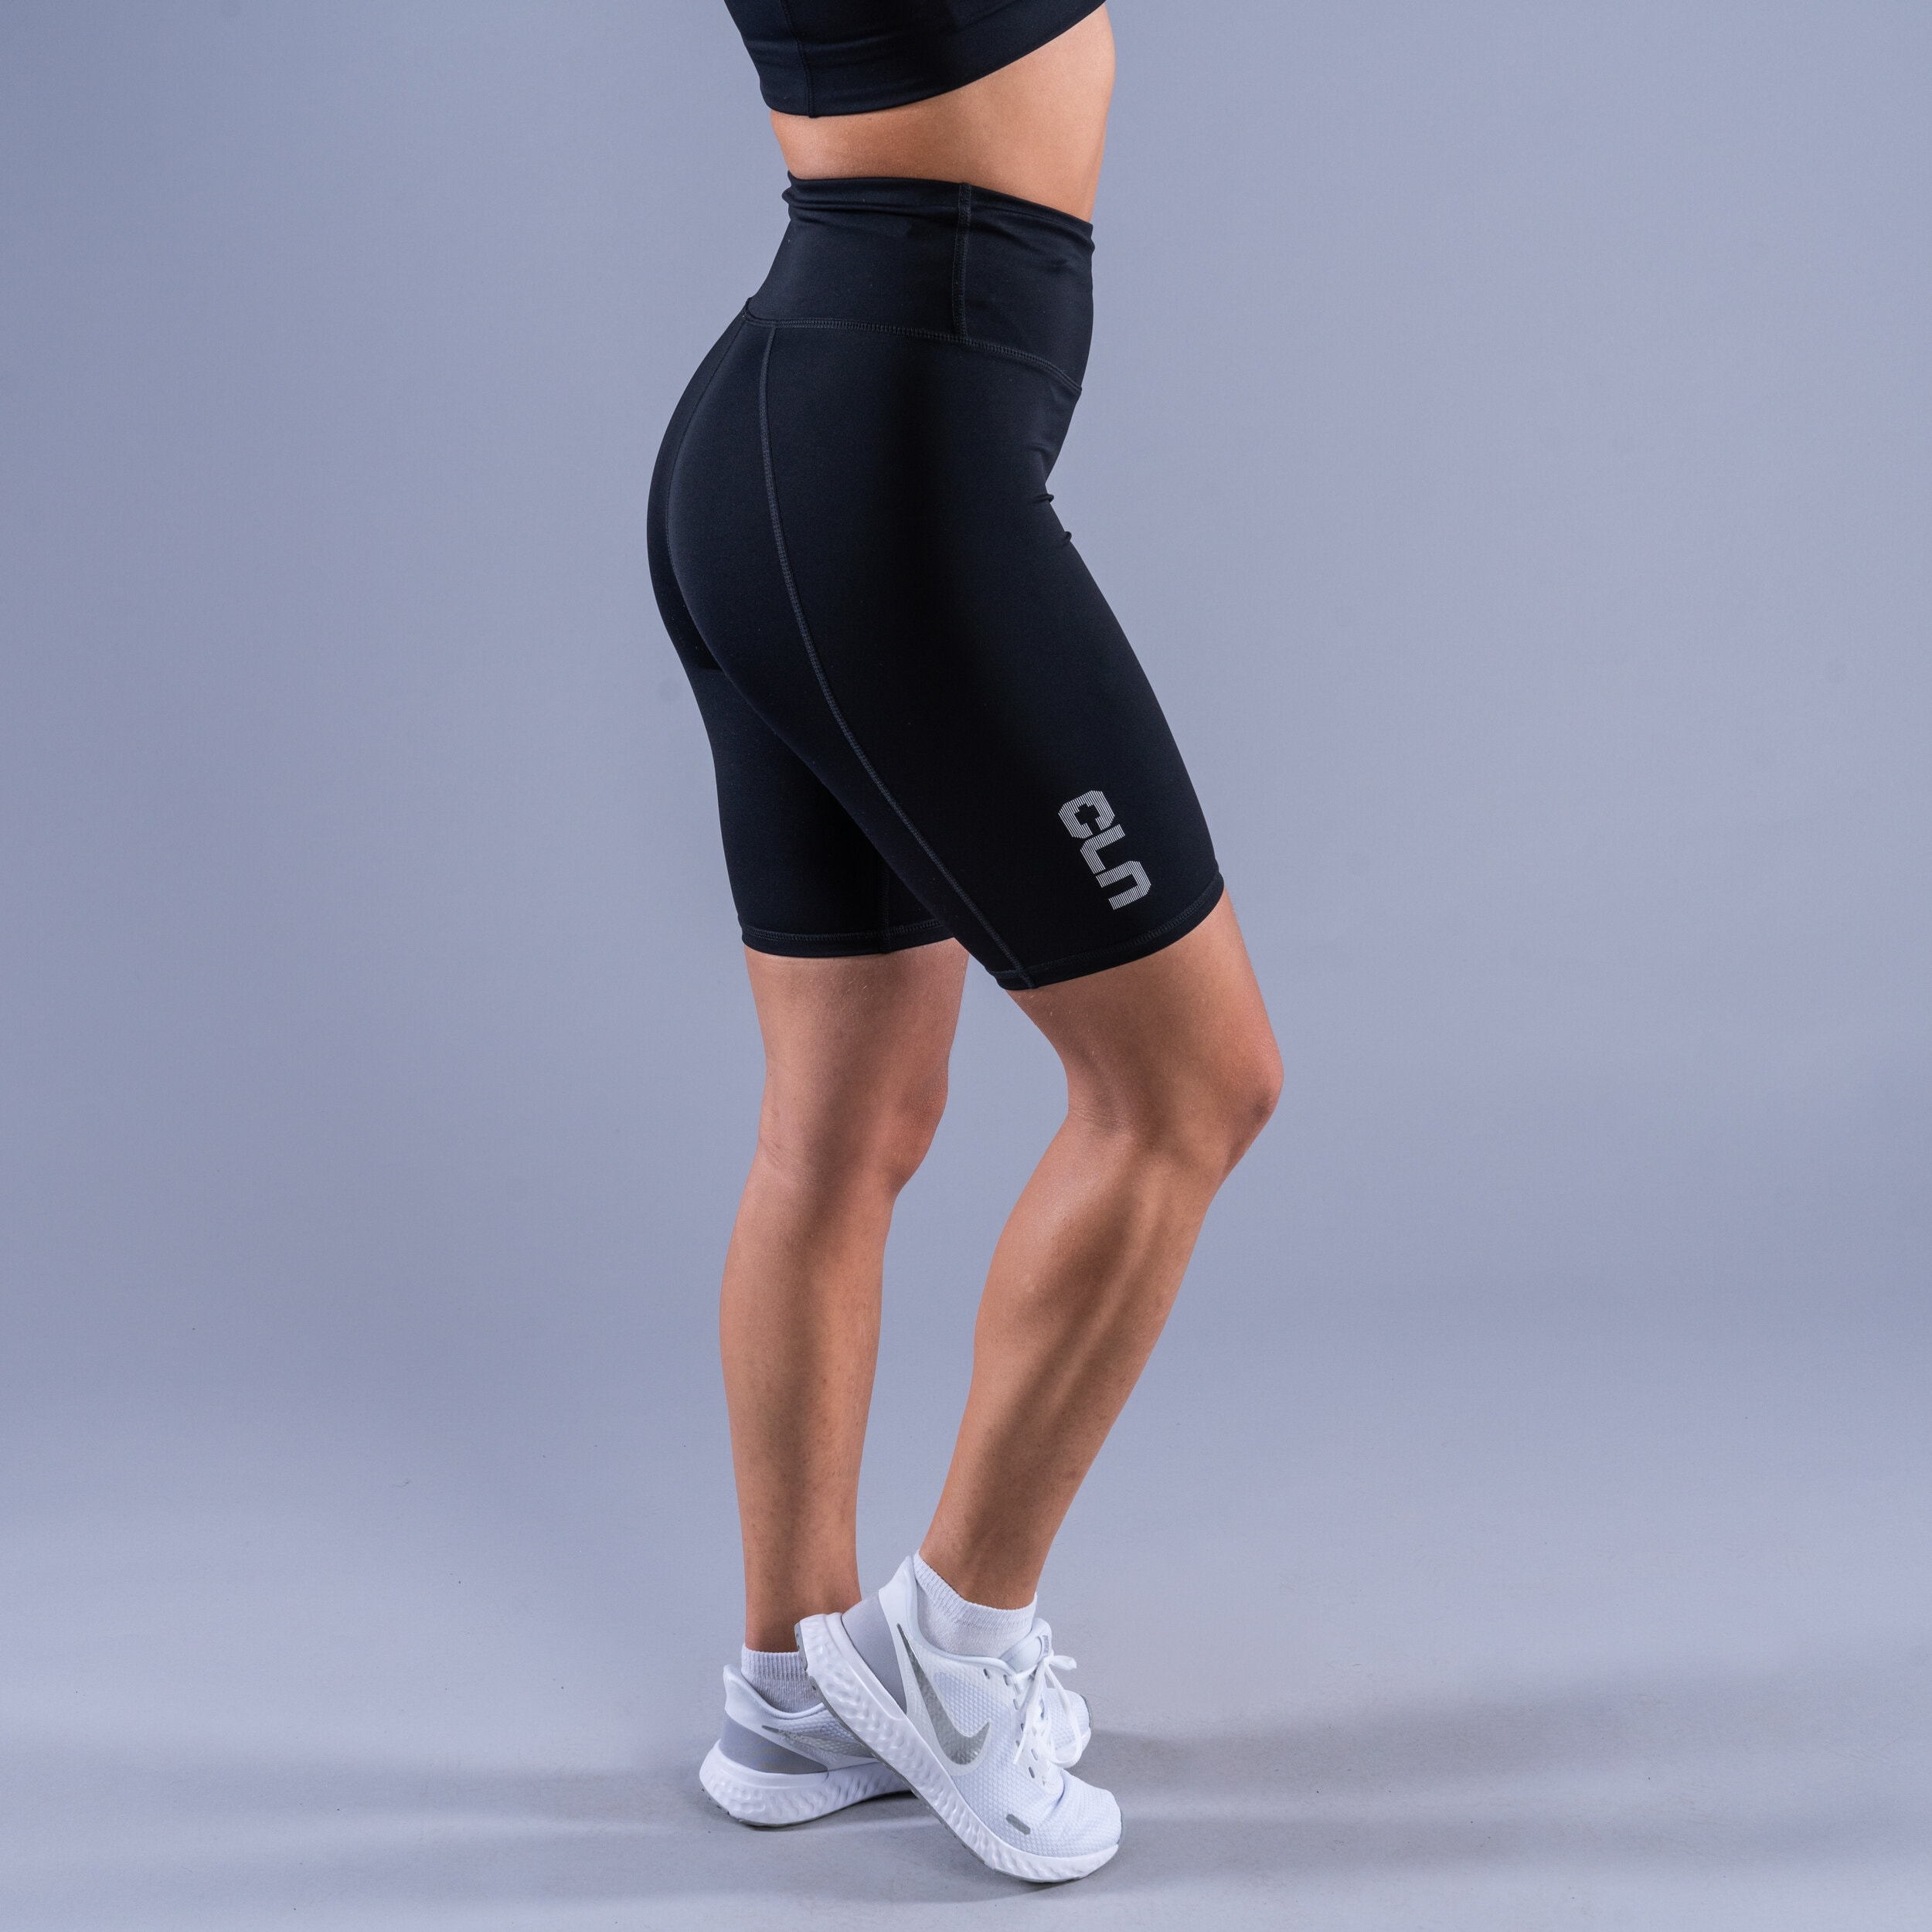 CLN Bike ws shorts Black